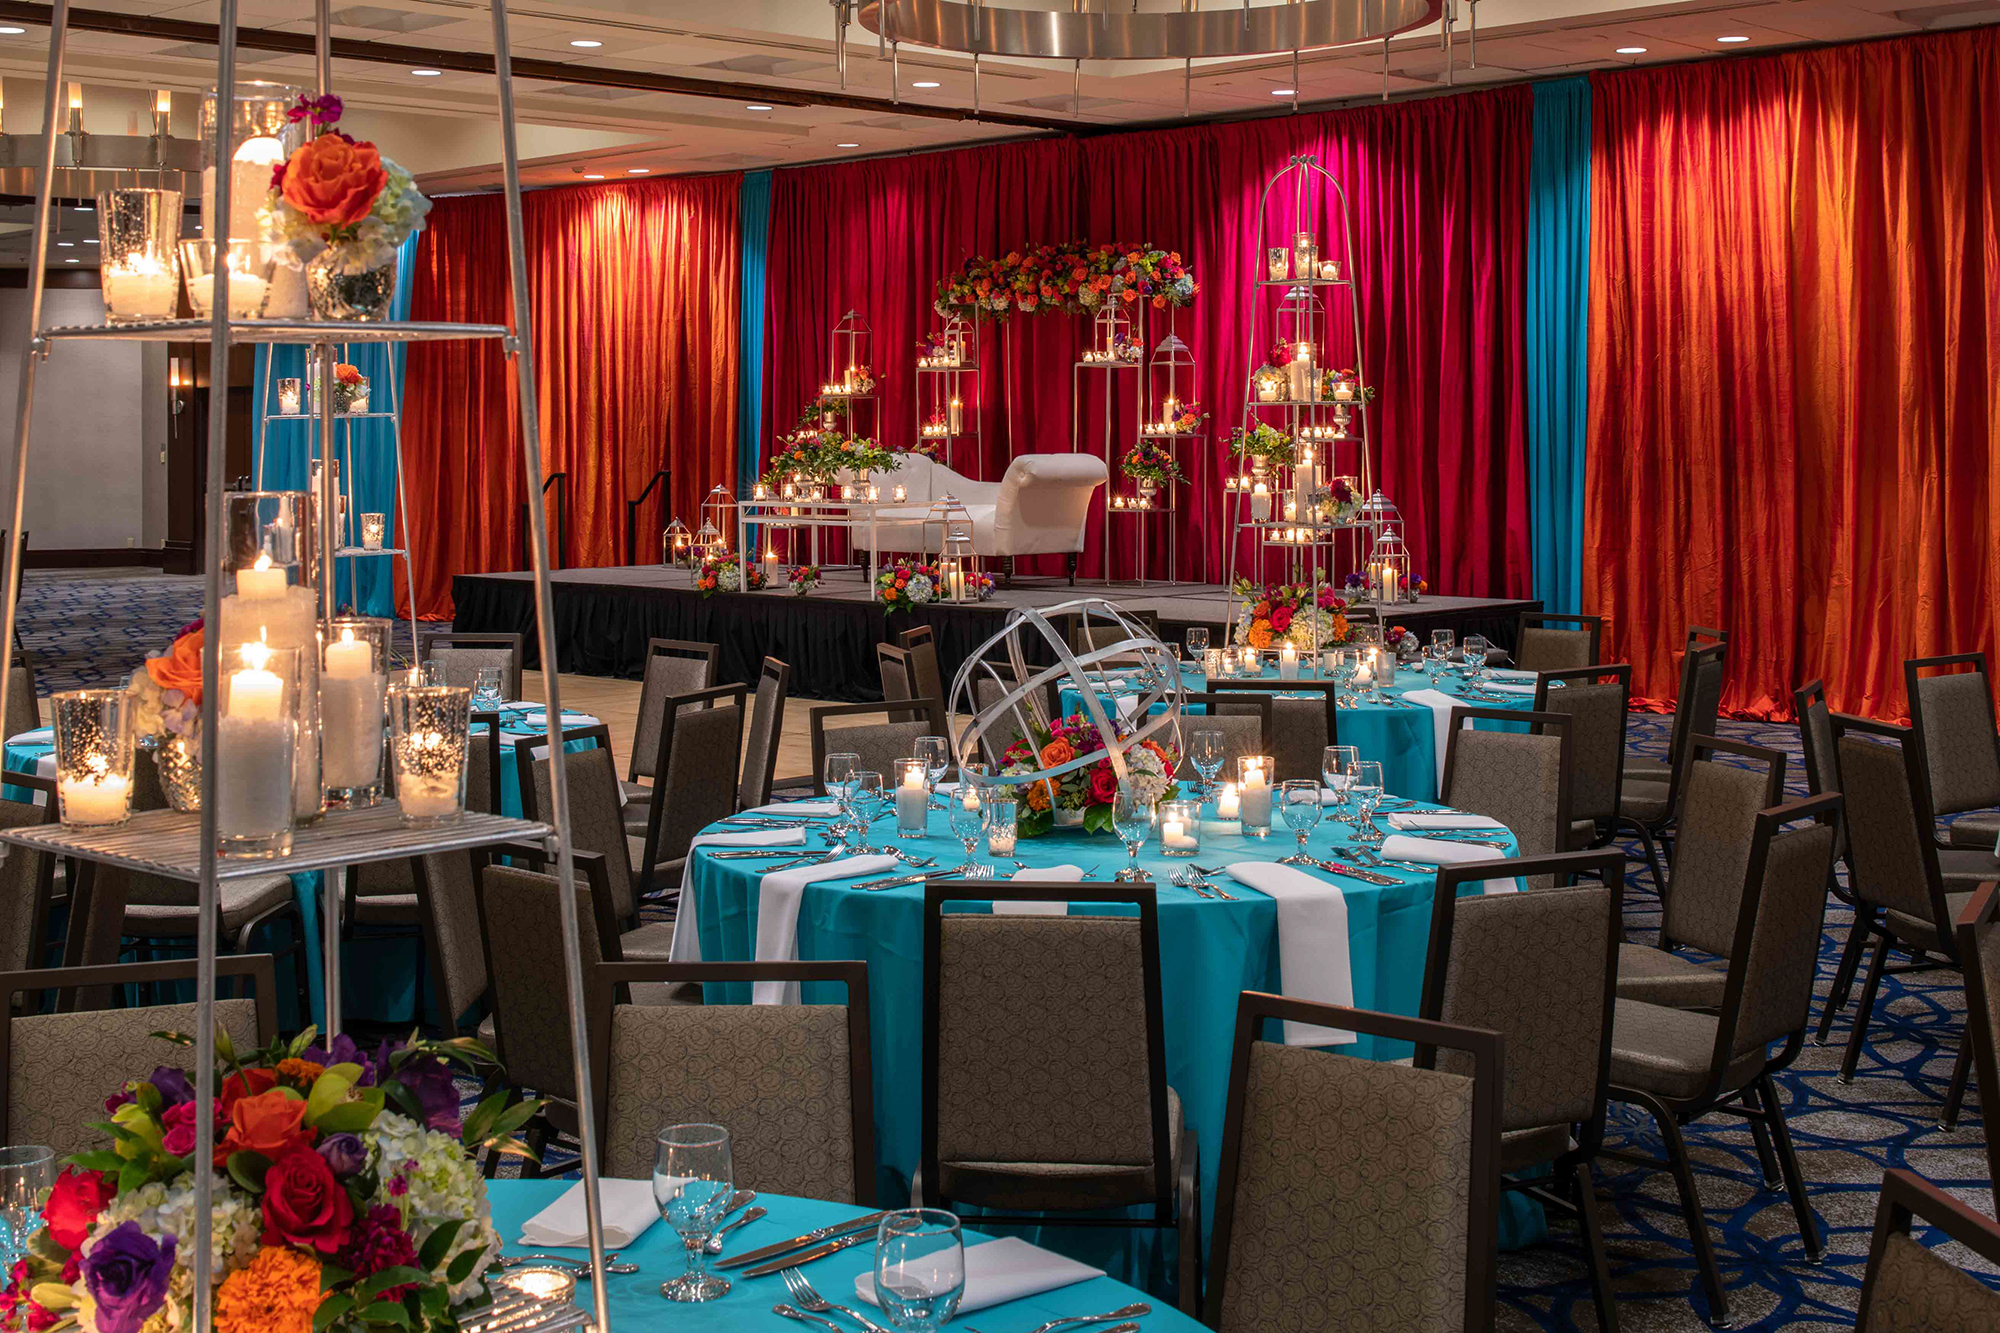 Hilton_Bellevue_Meeting_Grand_Ballroom_Wedding-0003.jpg